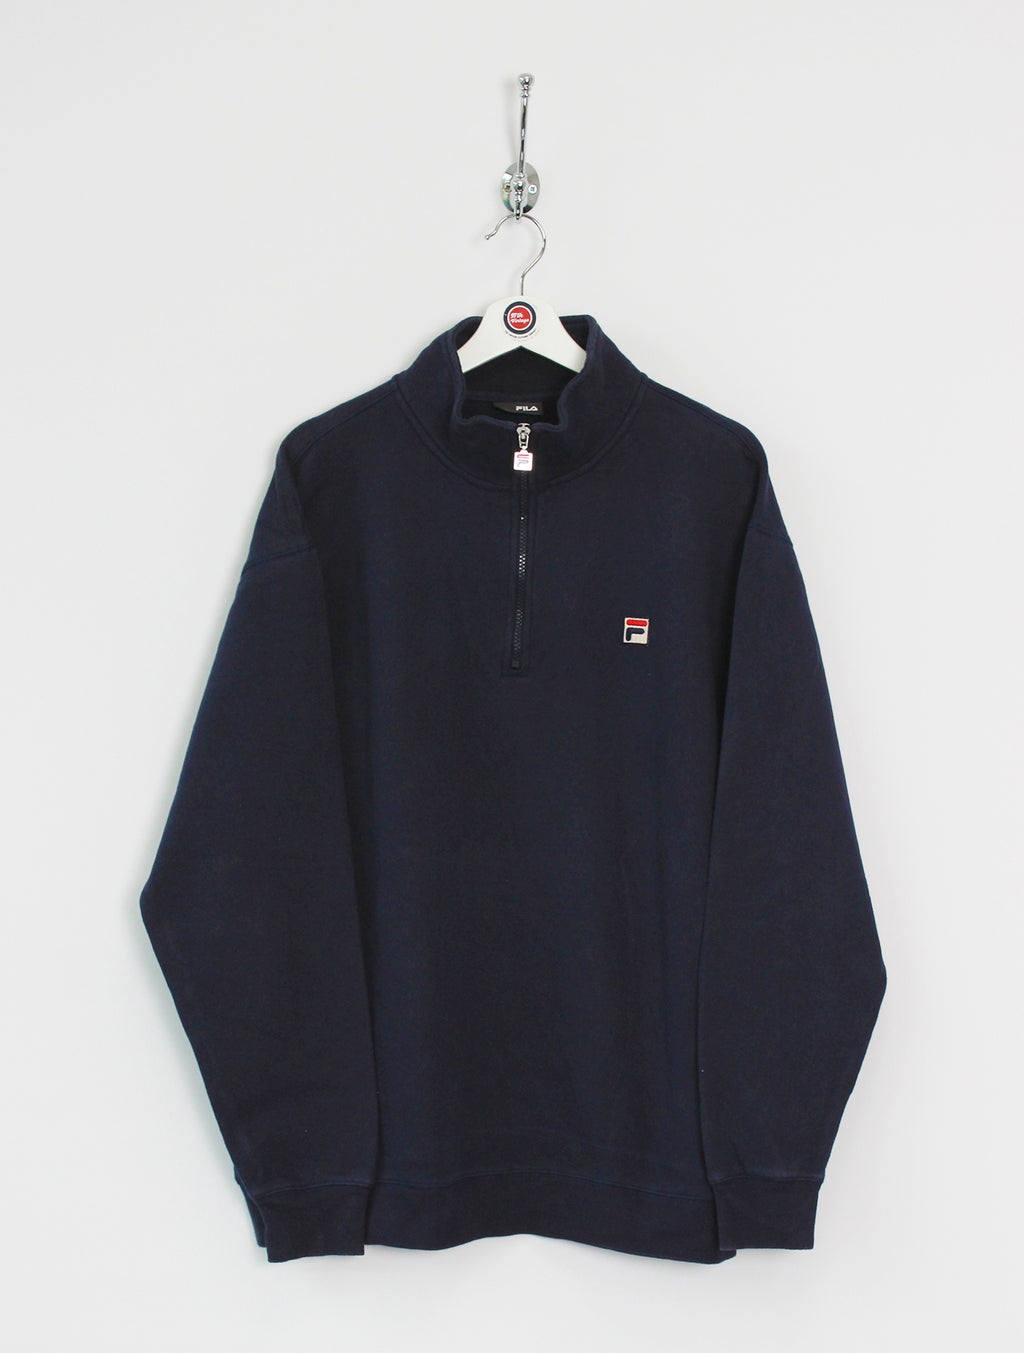 Fila 1/4 Zip Sweatshirt Navy (XL)